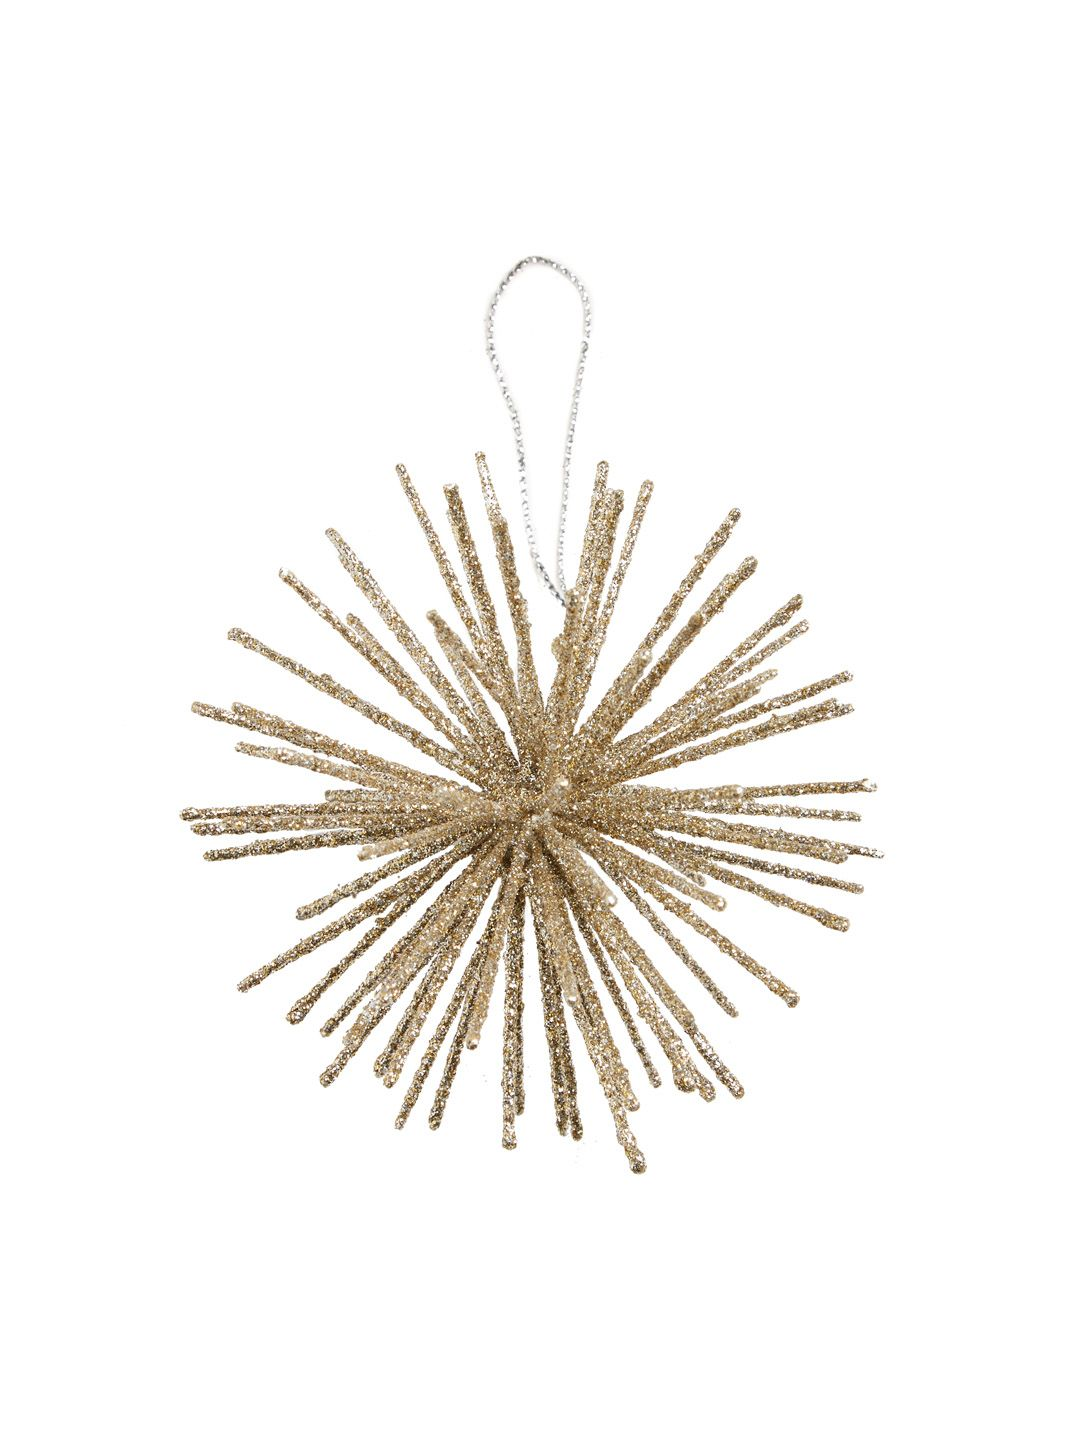 Small Starburst Ball Ornament by Gilt Home Collection $4 | Christmas ...